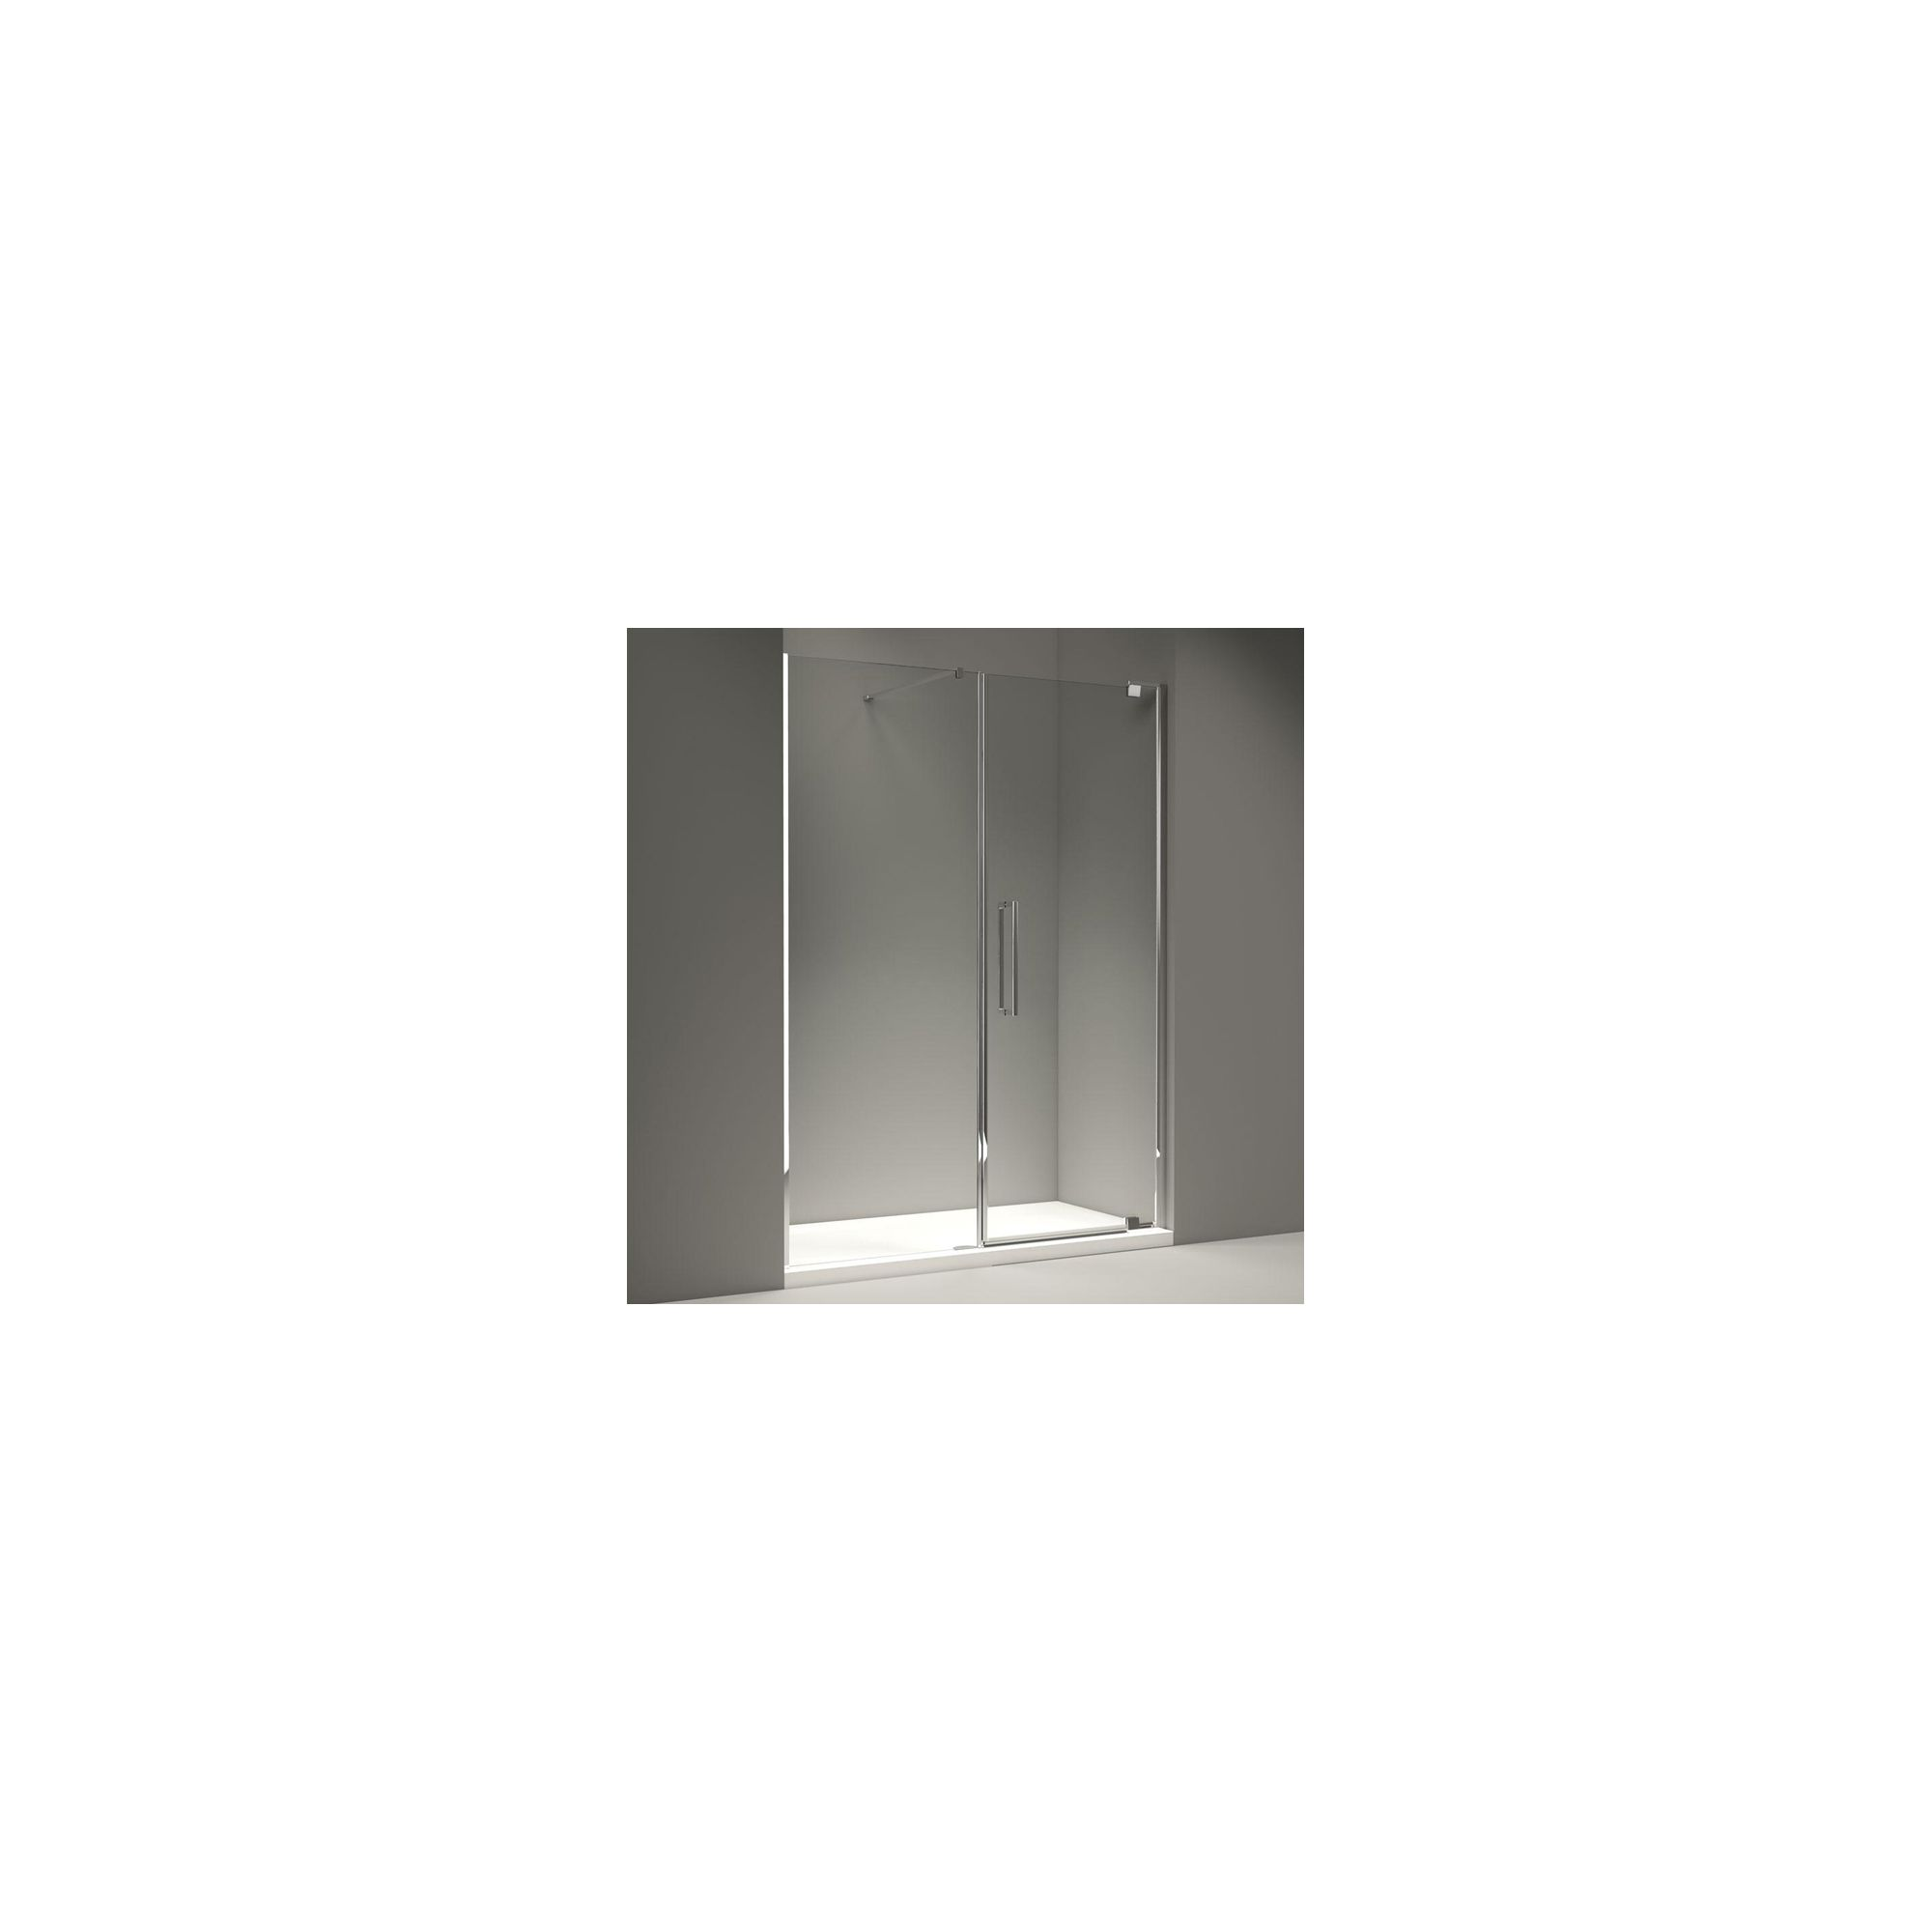 Merlyn Series 10 Inline Pivot Shower Door, 1700mm Wide, 10mm Smoked Glass at Tesco Direct